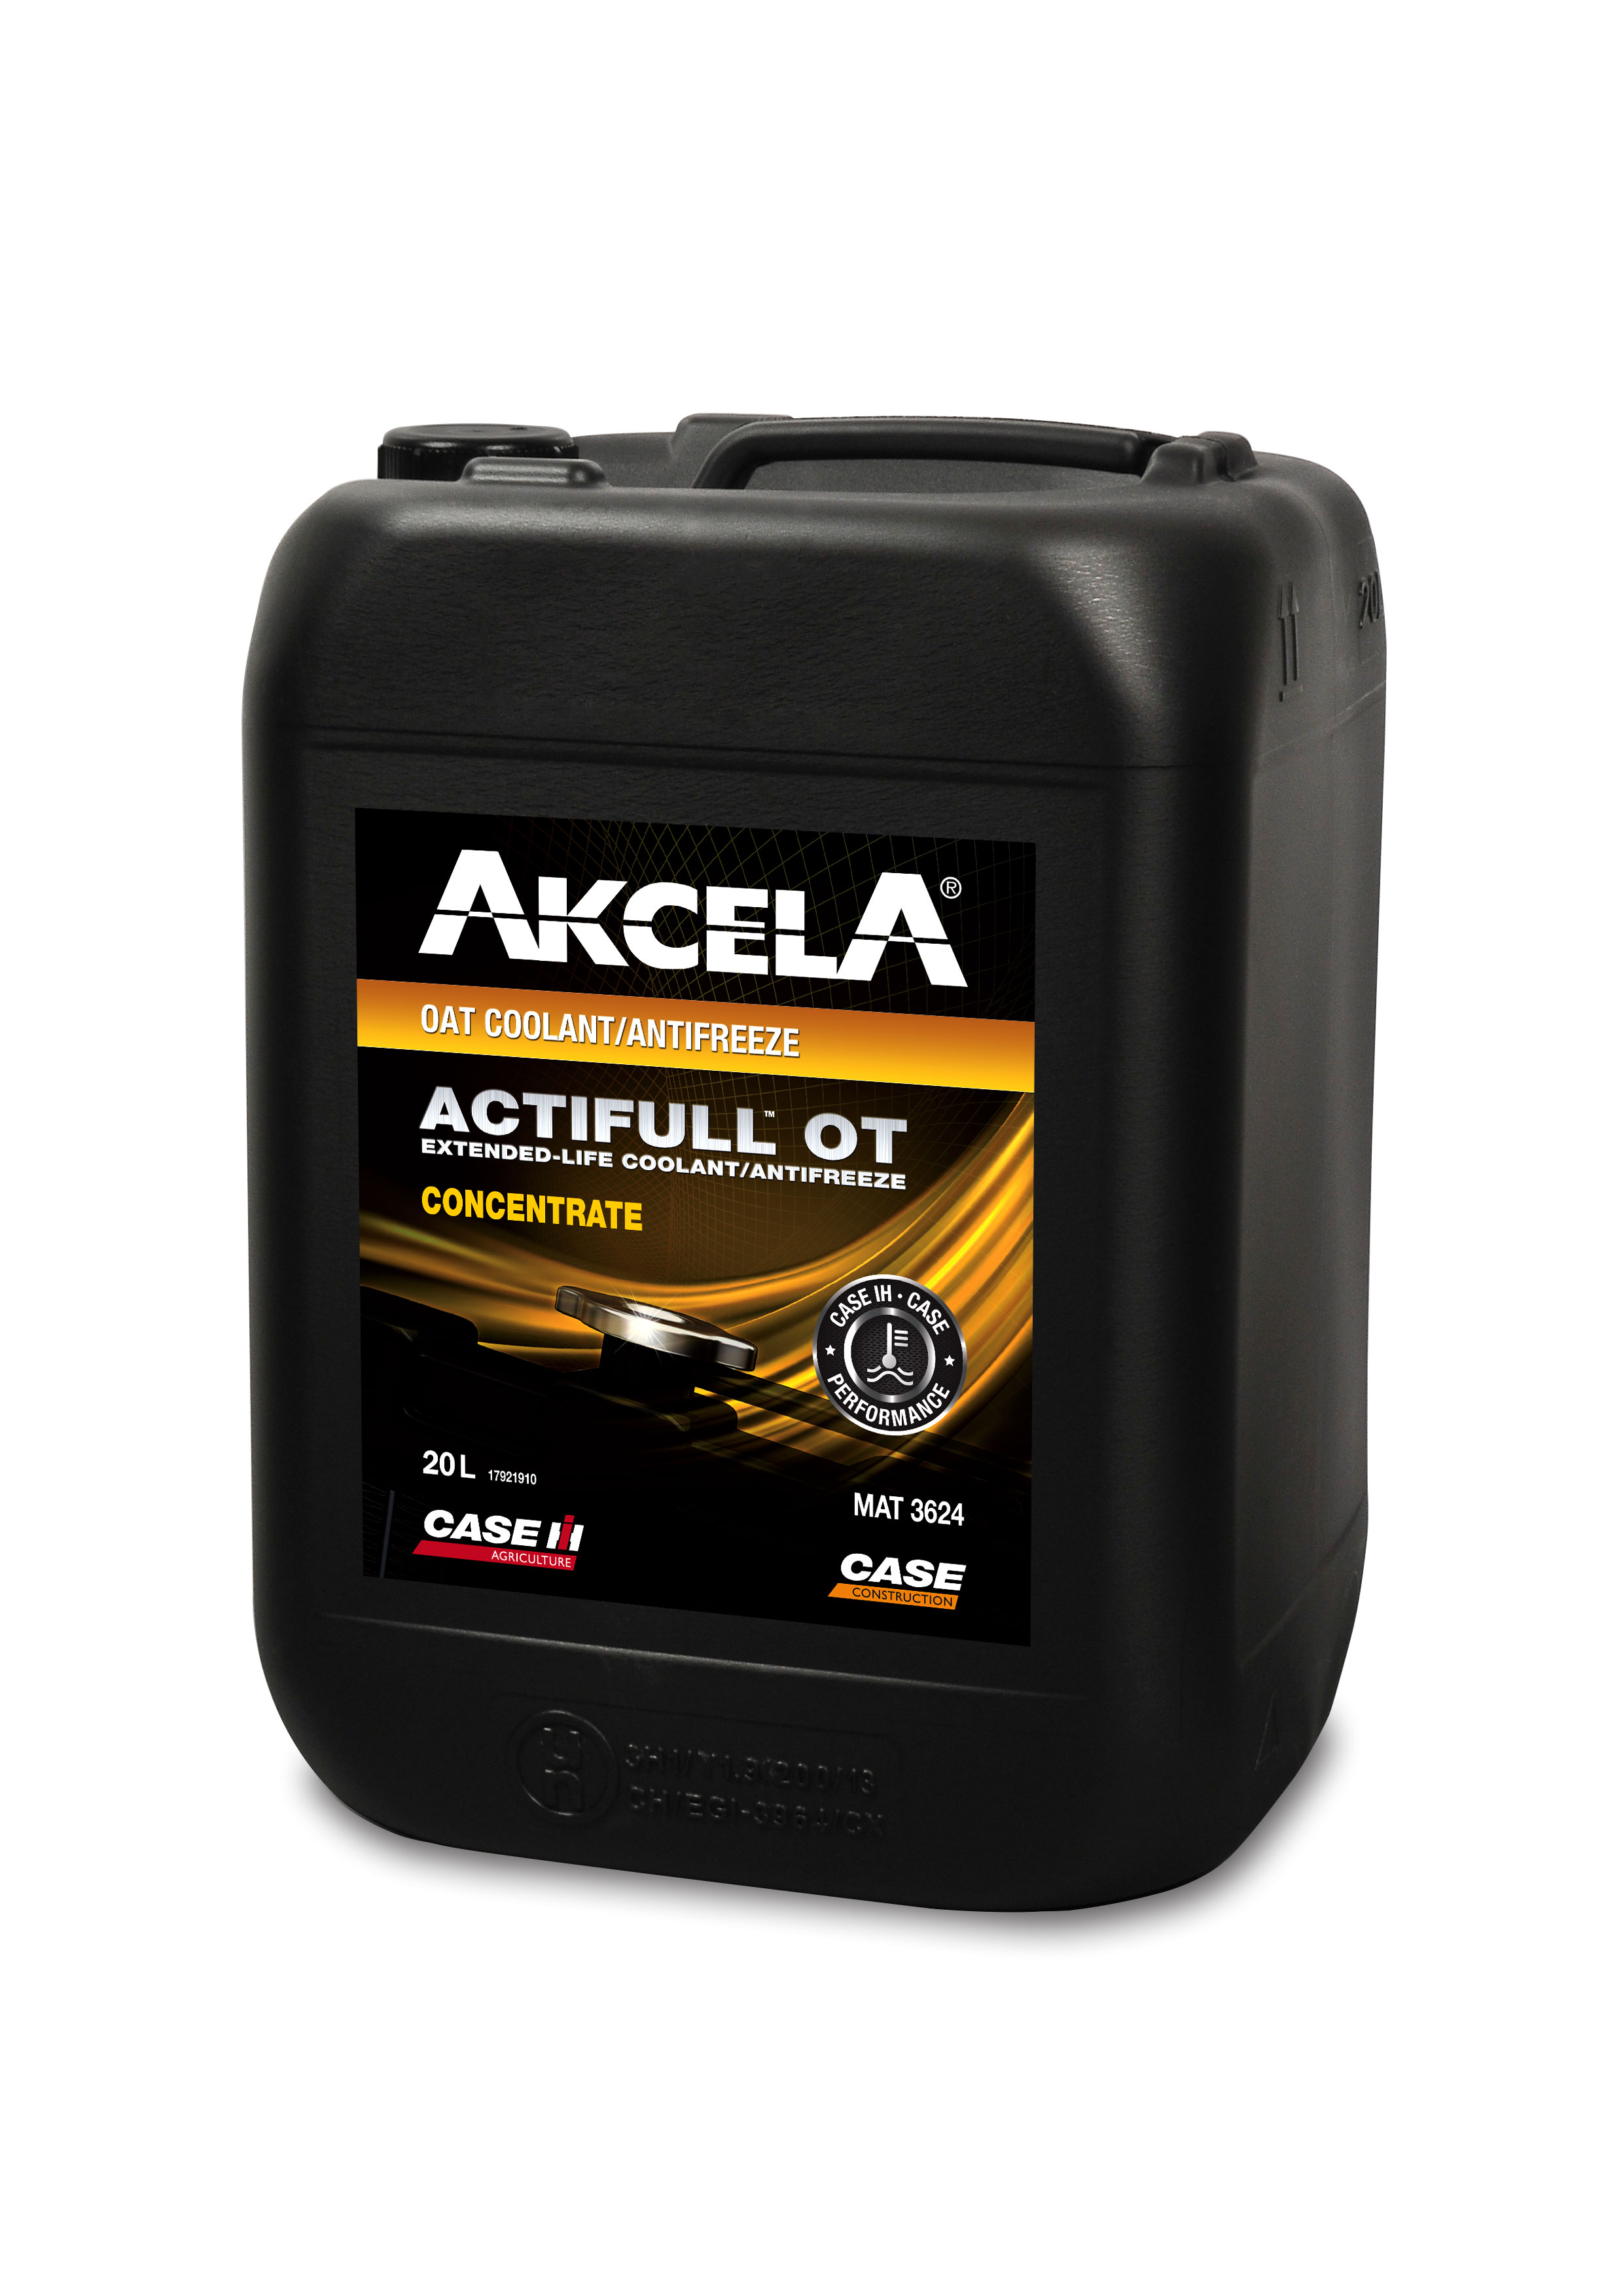 Akcela Actifull OT Concentrate